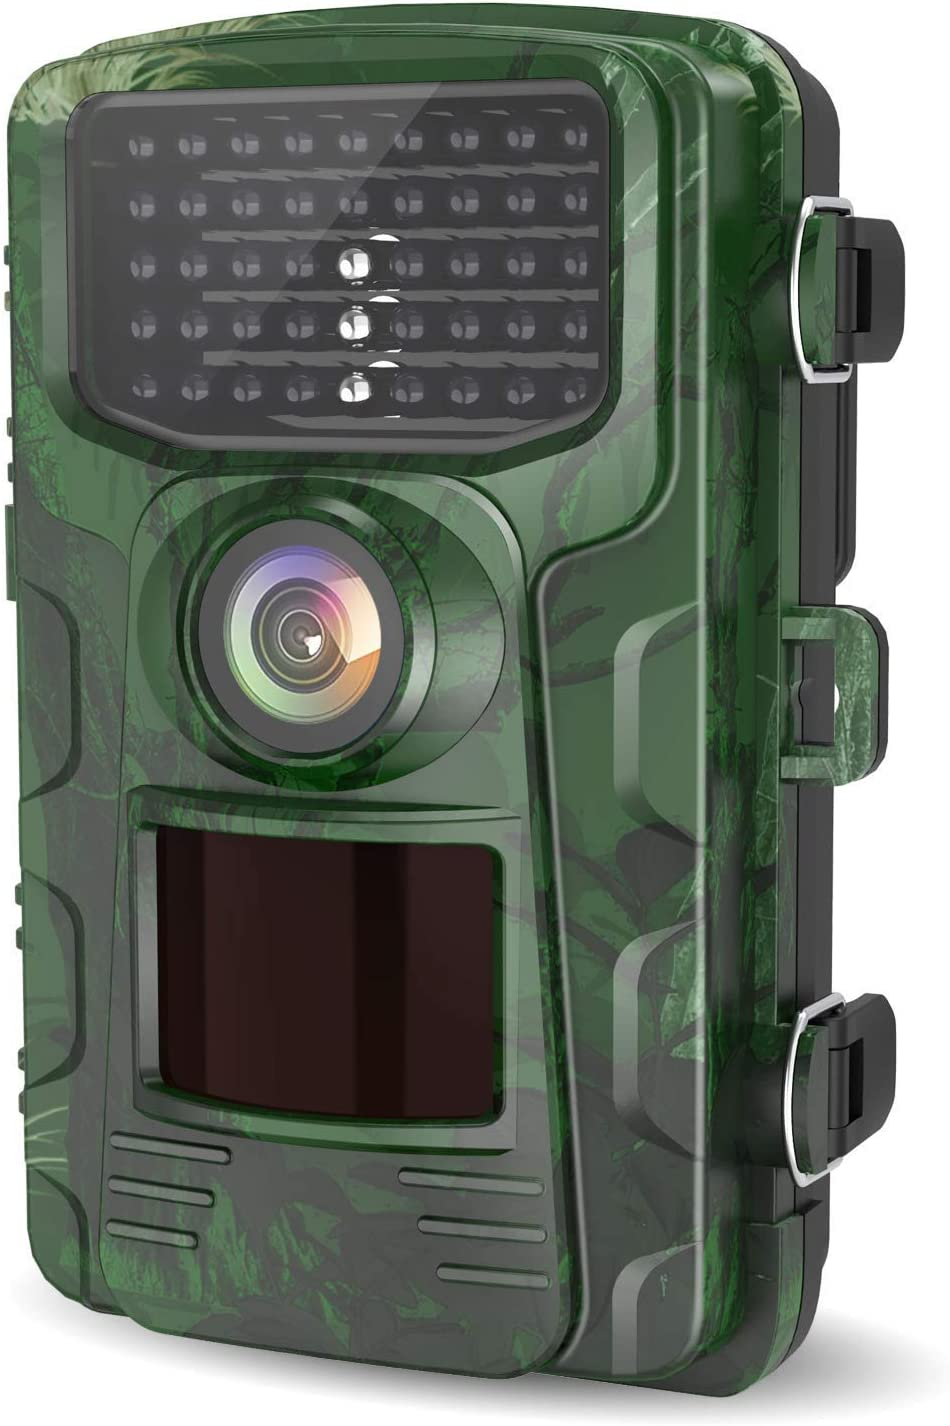 LETSCOM Trail Game Camera 14MP, IP65 Waterproof Wildlife Scouting Hunting Cams, 0.4s Trigger Speed, 42 Low Glow IR LEDs, 120 Wide Angle